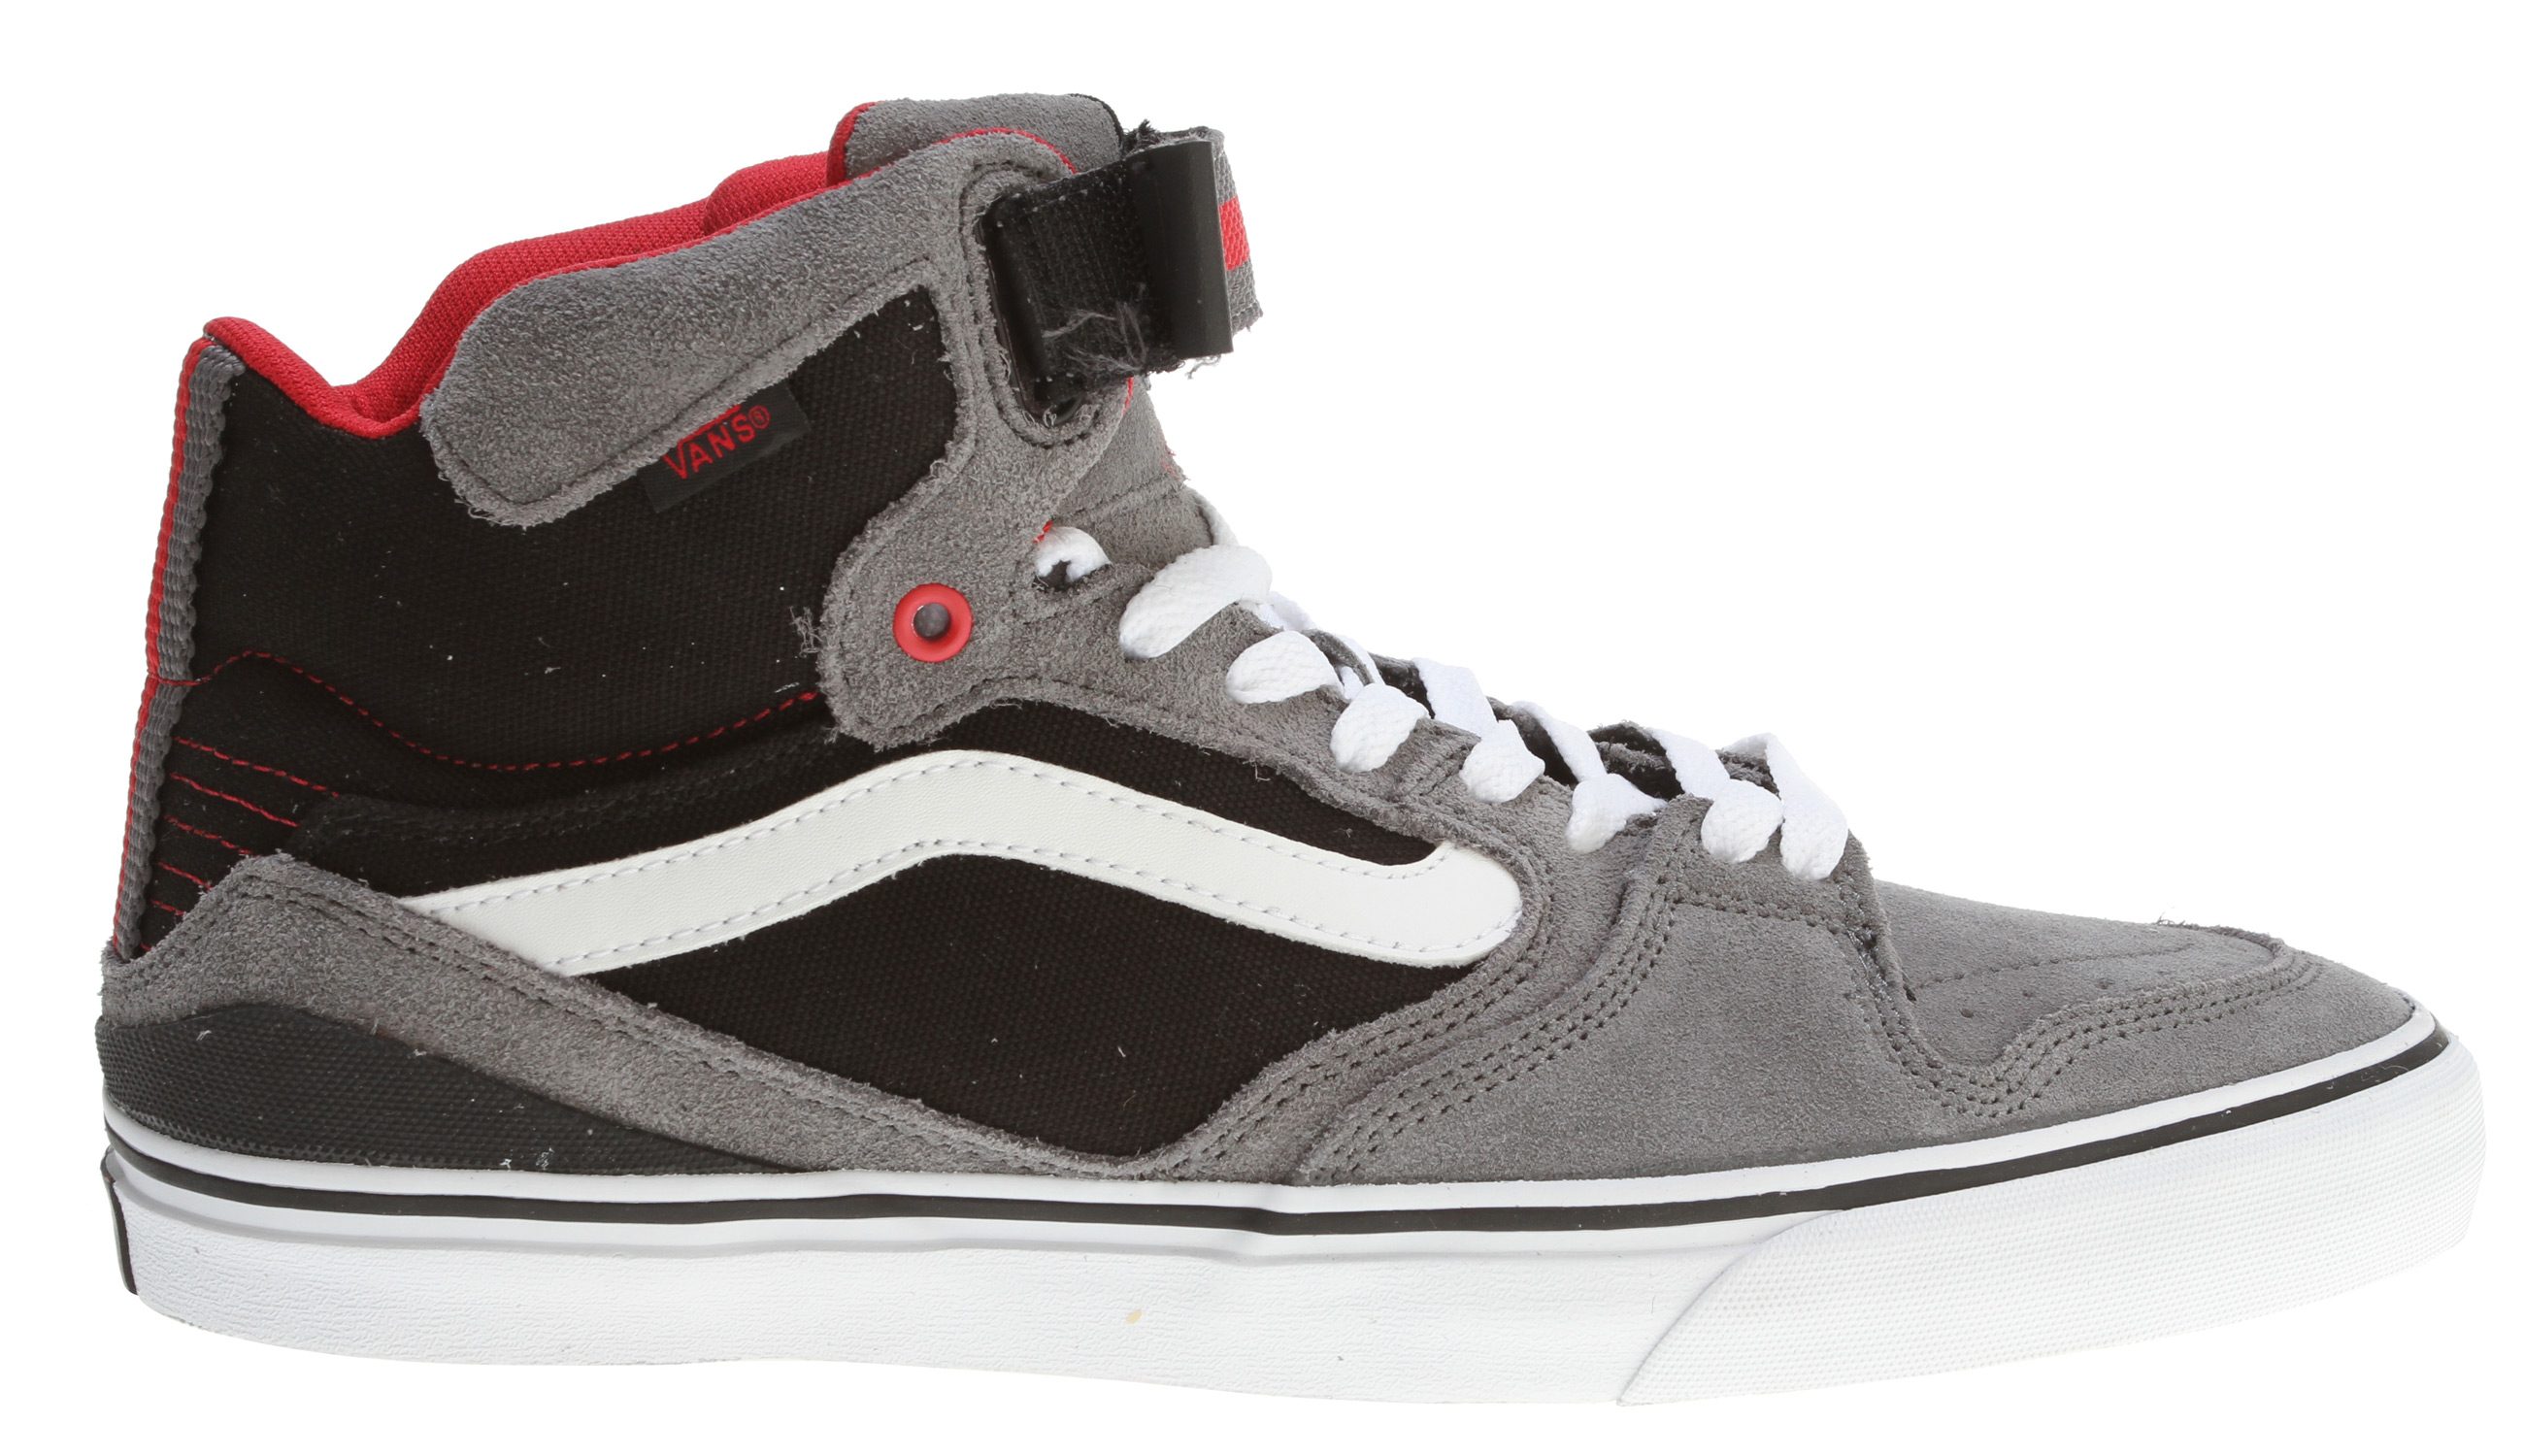 BMX The second edition of the Owens Hi, endorsed by BMX pro Chase Hawk, rests not on its laurels but rather continues the line's innovating ways. Double and triple stitching provides new heights in performance durability, and other components provide unmatched comfort, support, and heel cushioning. The new look features fine suede, and pebbled leather inlays. Beneath are Vans' famous waffle rubber soles.Key Features of the Vans Owens Hi 2 Bike Shoes: Endorsed by Chase Hawk. Waffle Grip: Superior quality outsole rubber compound and tread pattern without compromising durability. Mega Thane: Drop in polyurethane midsole insert for exceptional comfort and cushioning in our classic vulcanized construction. - $70.00